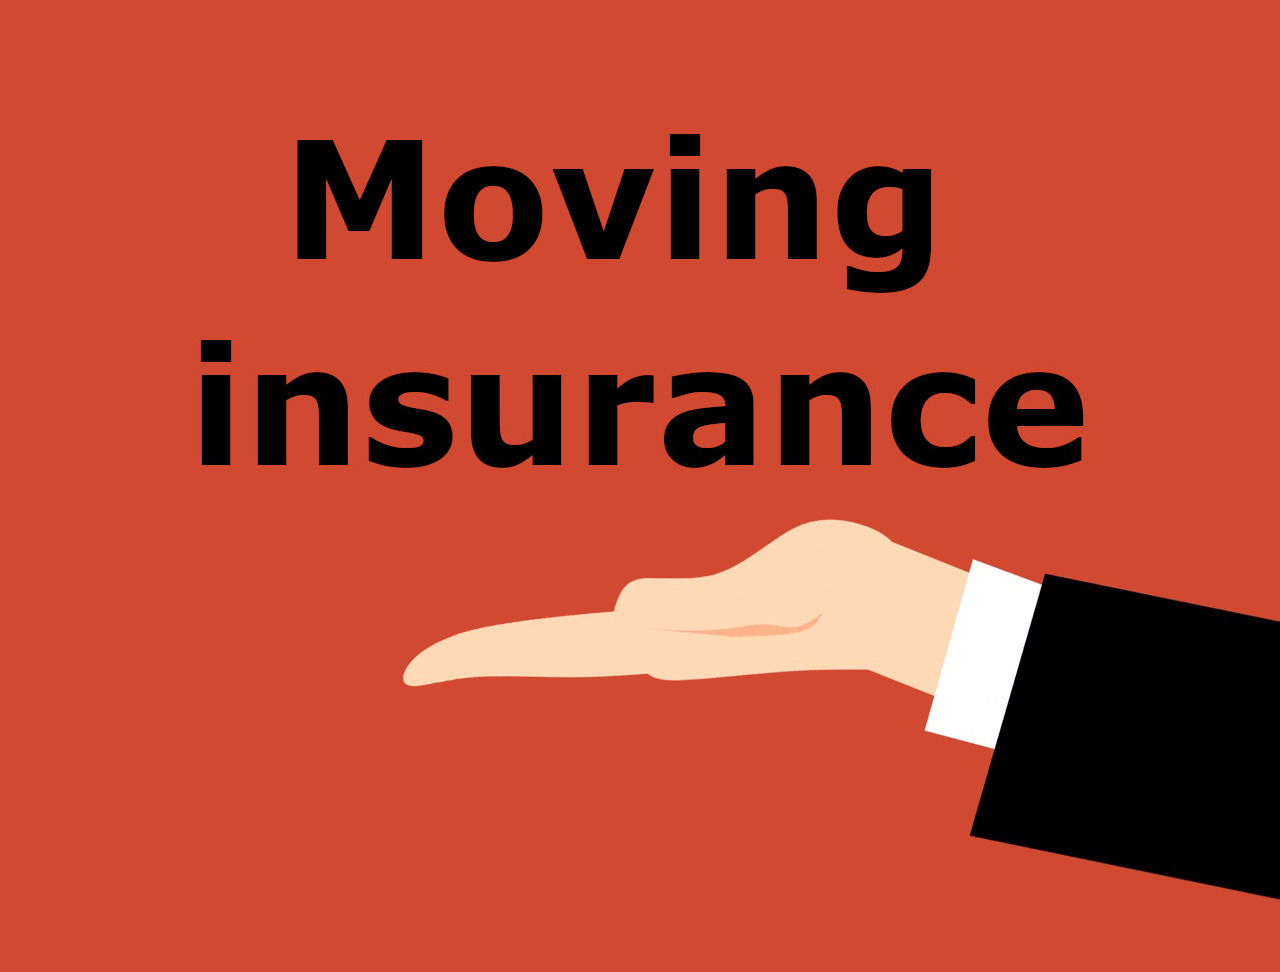 5 things you need to know about moving insurance